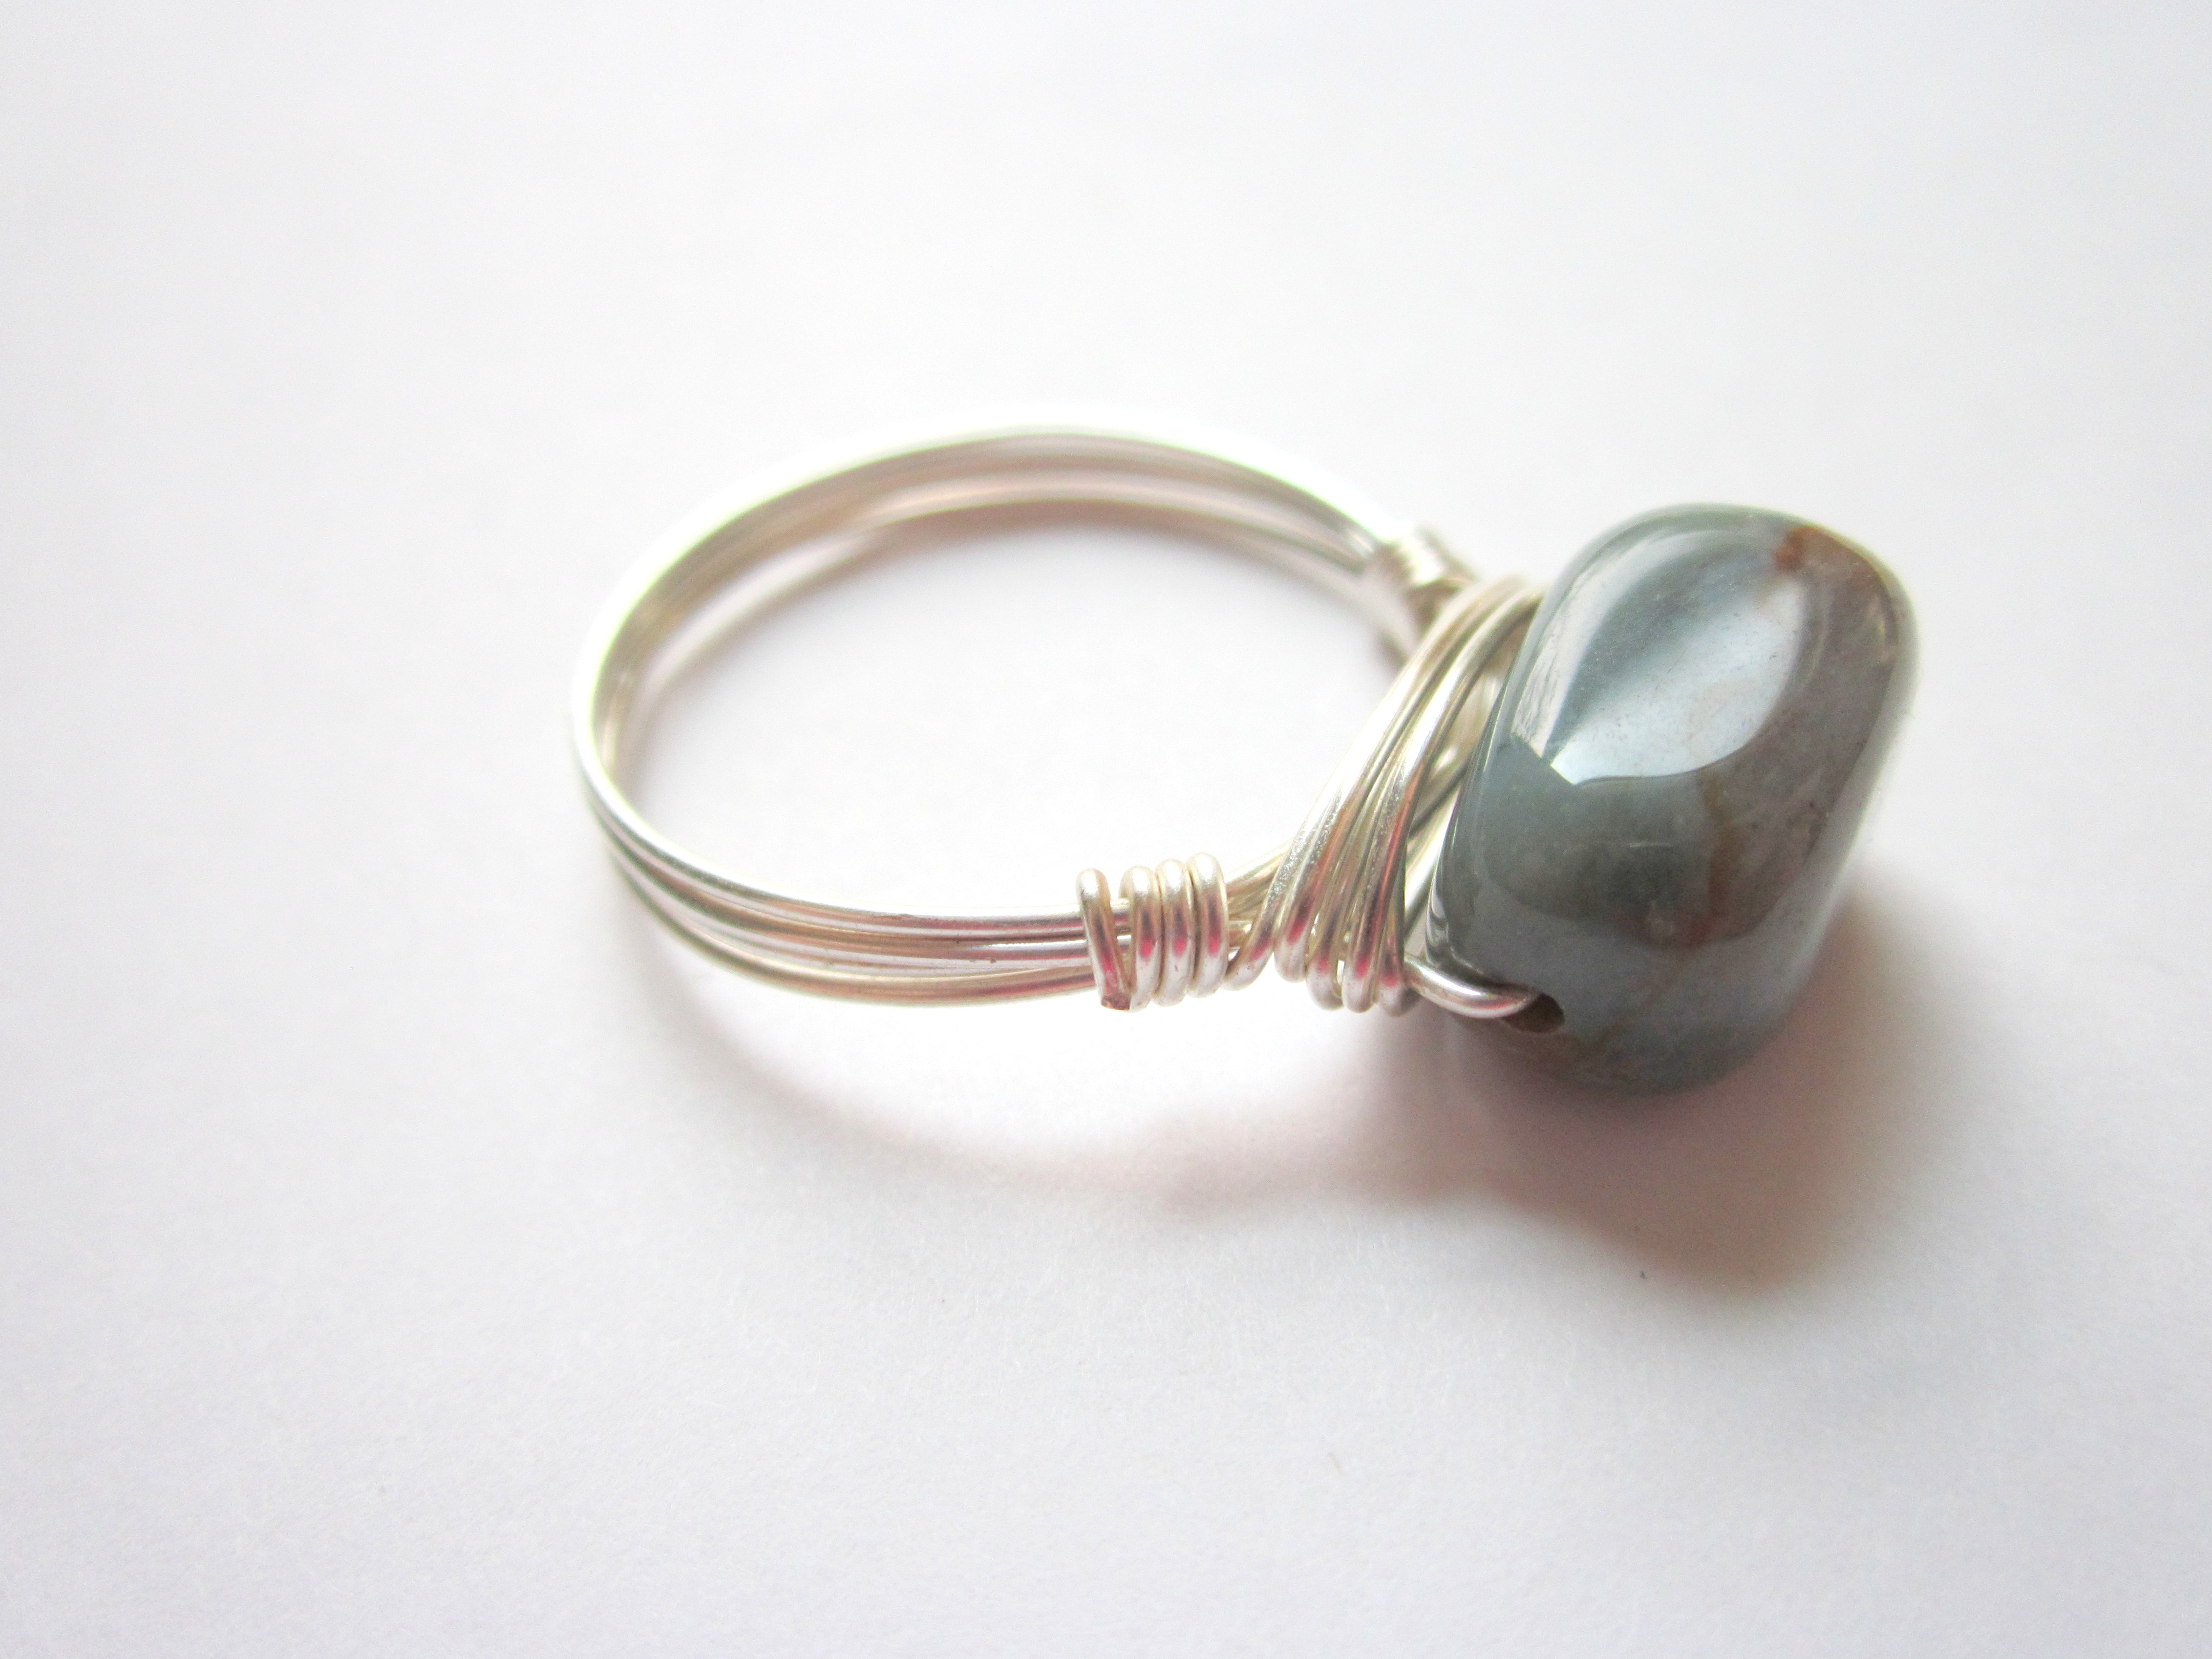 Make Wire Wrapped Rings as Beautiful, Thoughtful Gifts